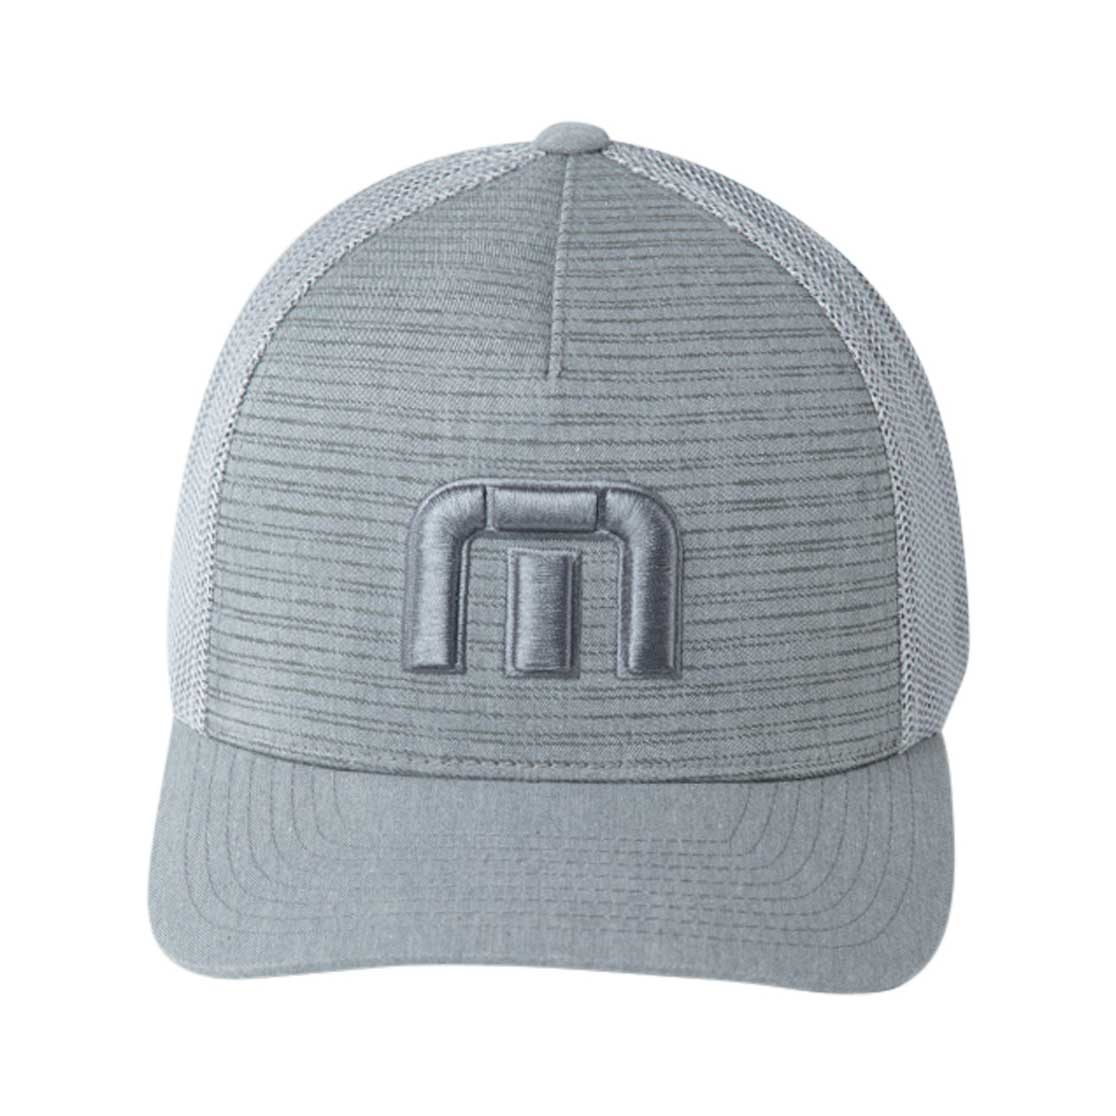 Travis Mathew Iced Tea Fitted Cap